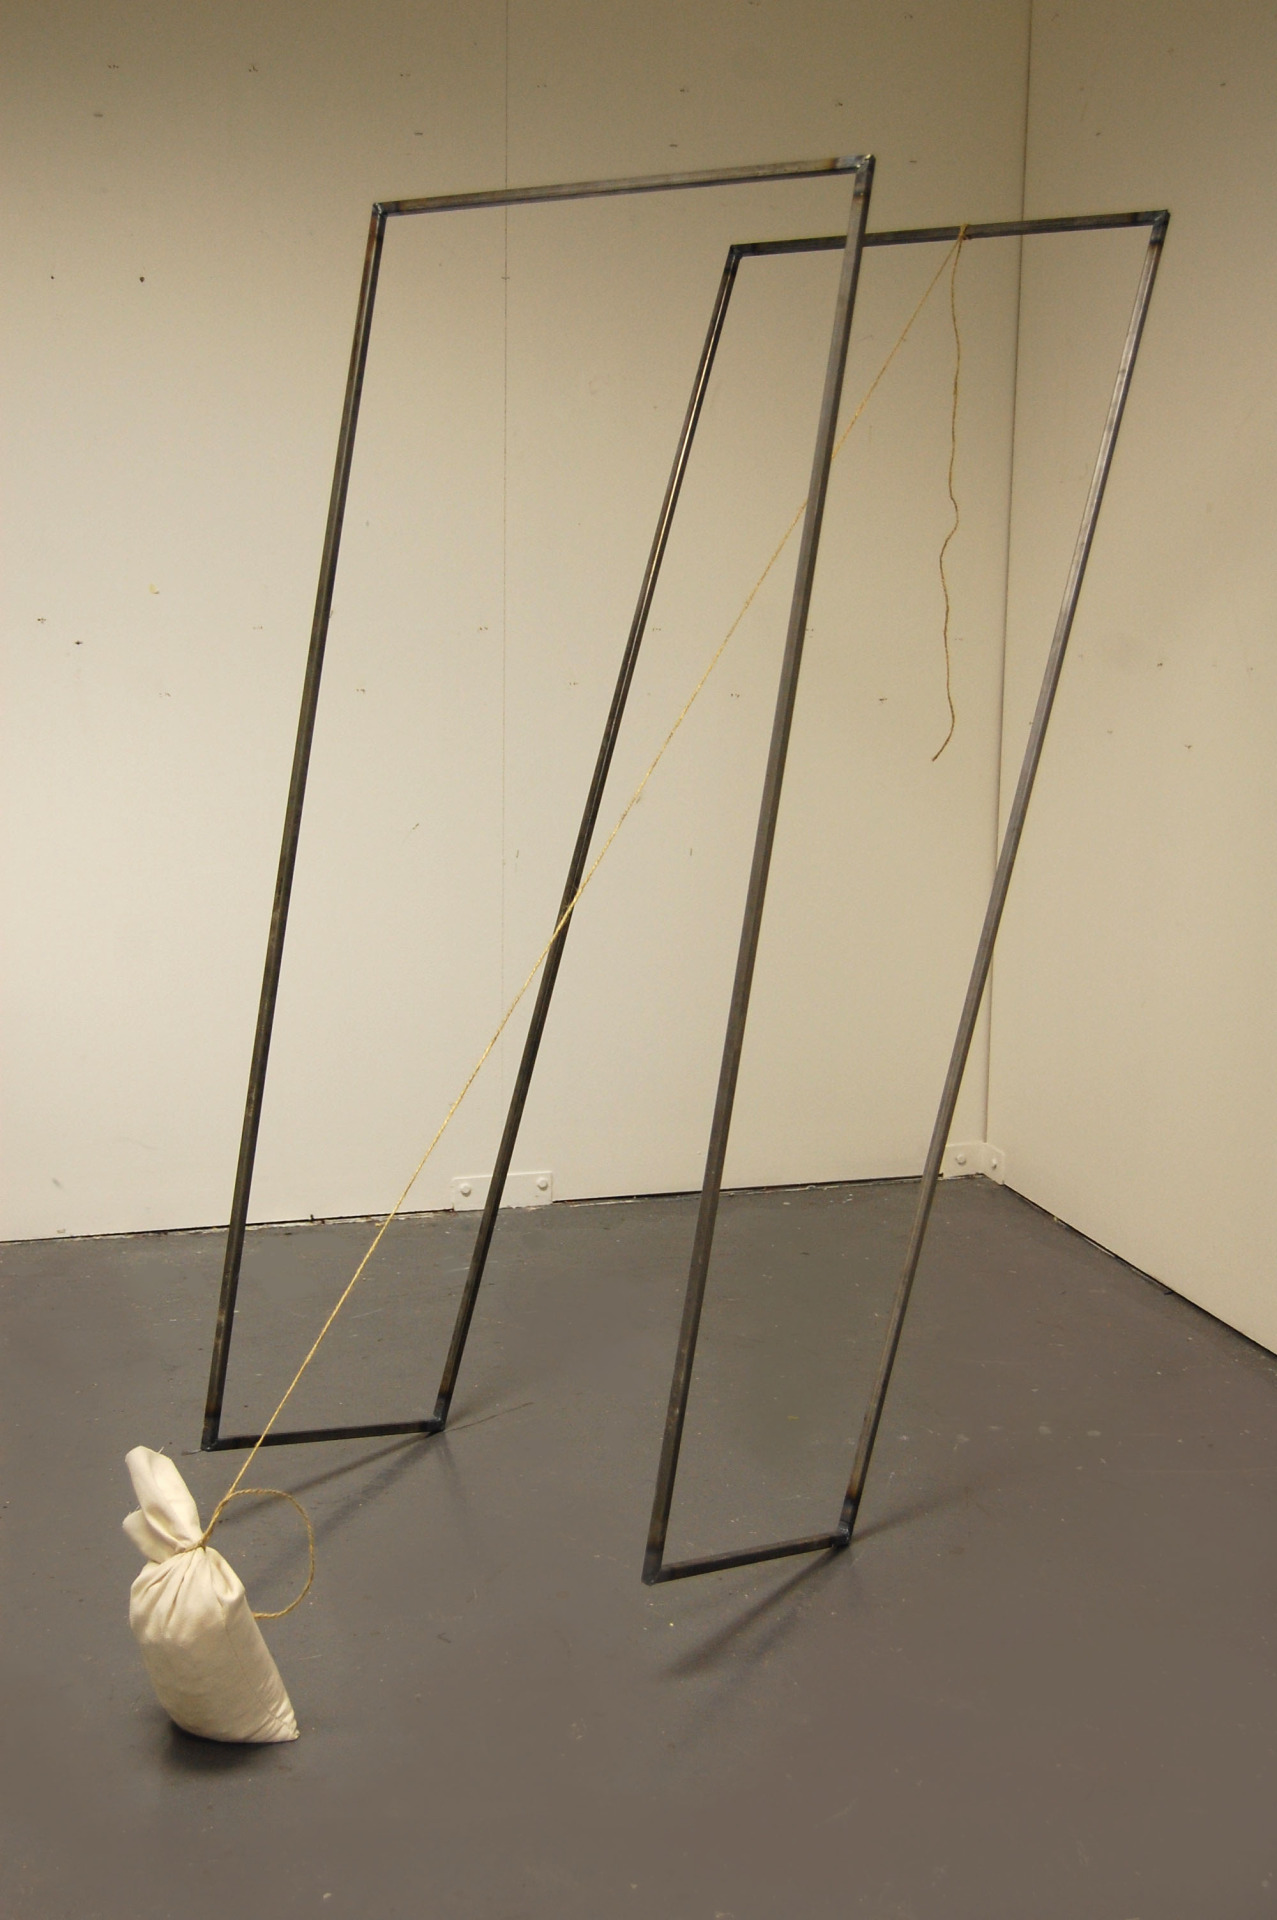 'Untitled' February 2013. Welded steel, string (hessian), calico and sand.  80cm x 60cm x 120cm. It correlates the language in my drawings into a physical state using weight to respond to line.